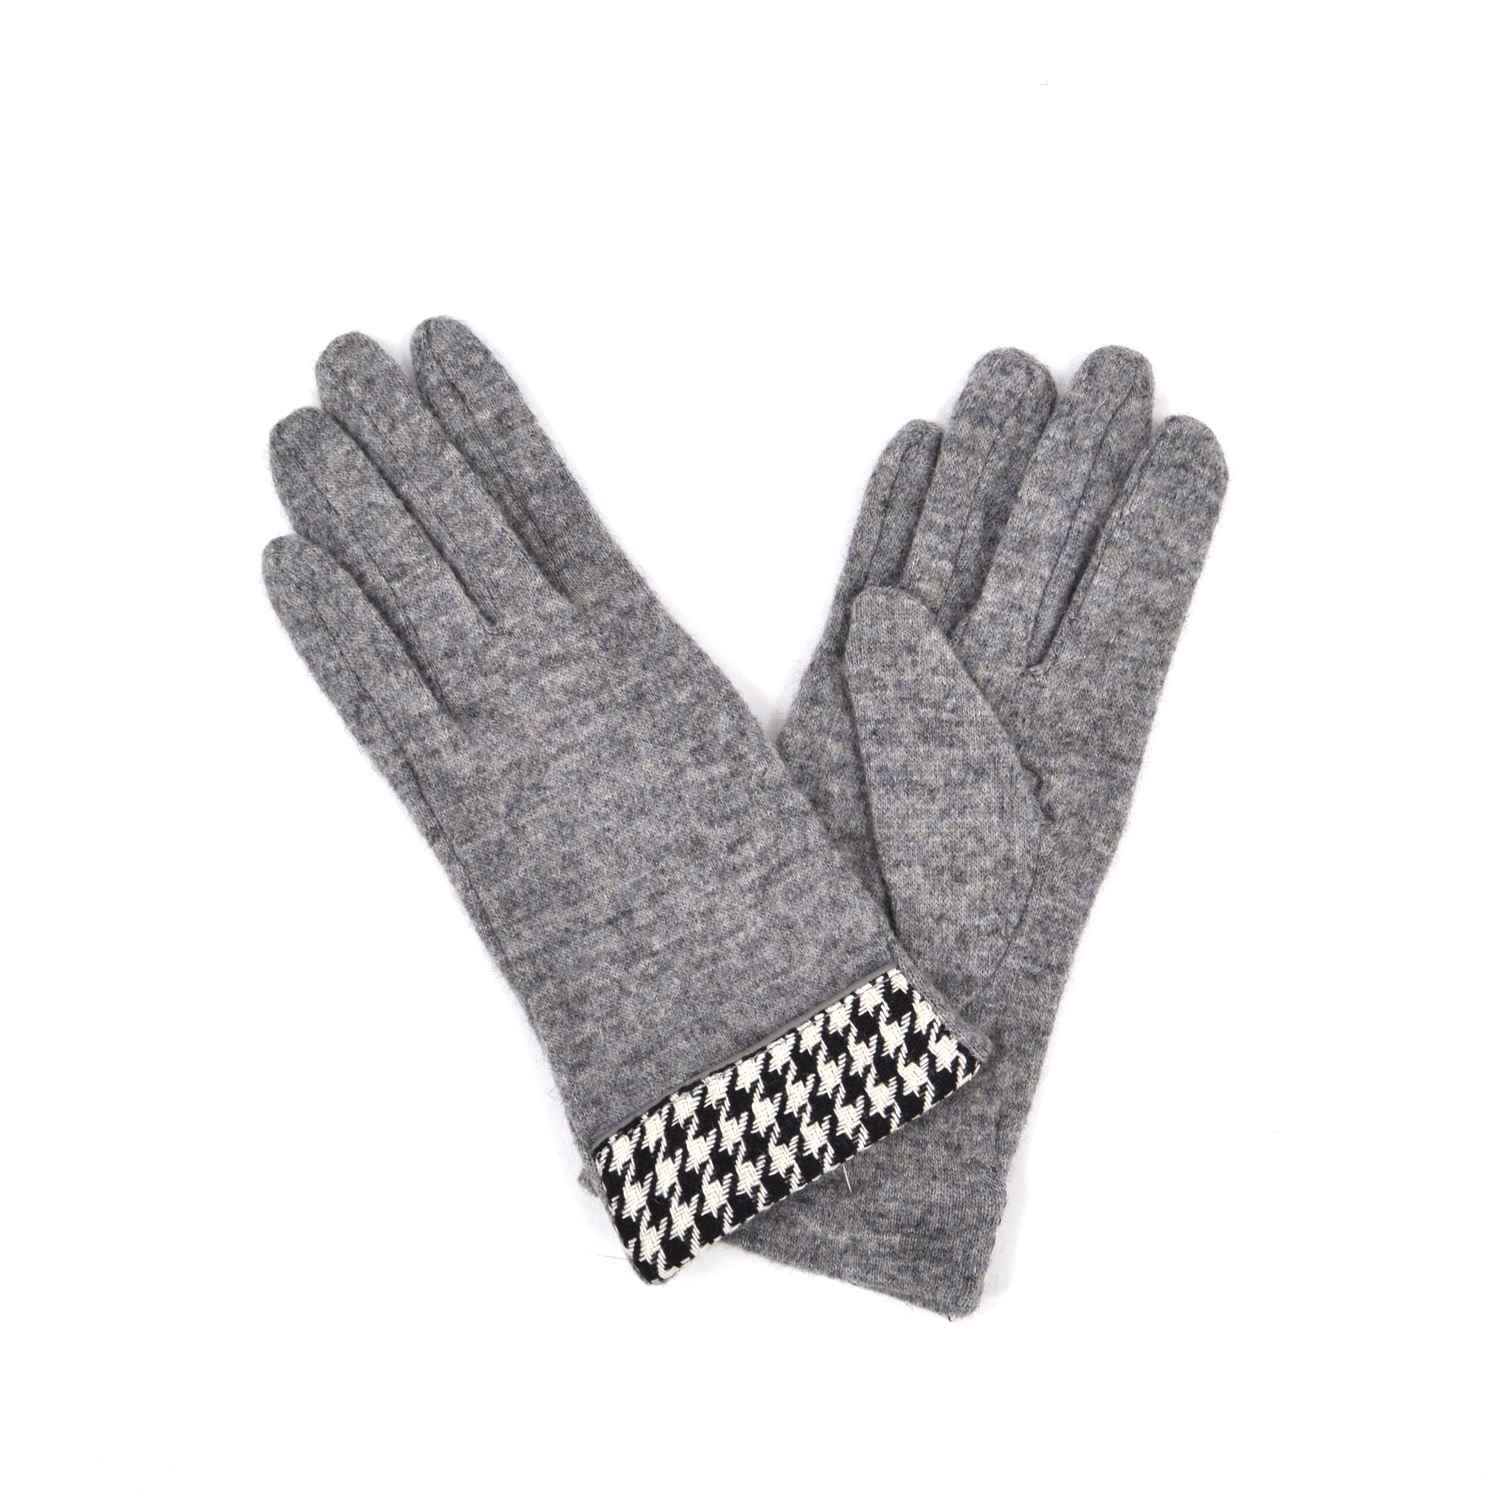 Womens Wool Gloves With Houndstooth Pattern Ladies Winter Gloves | eBay